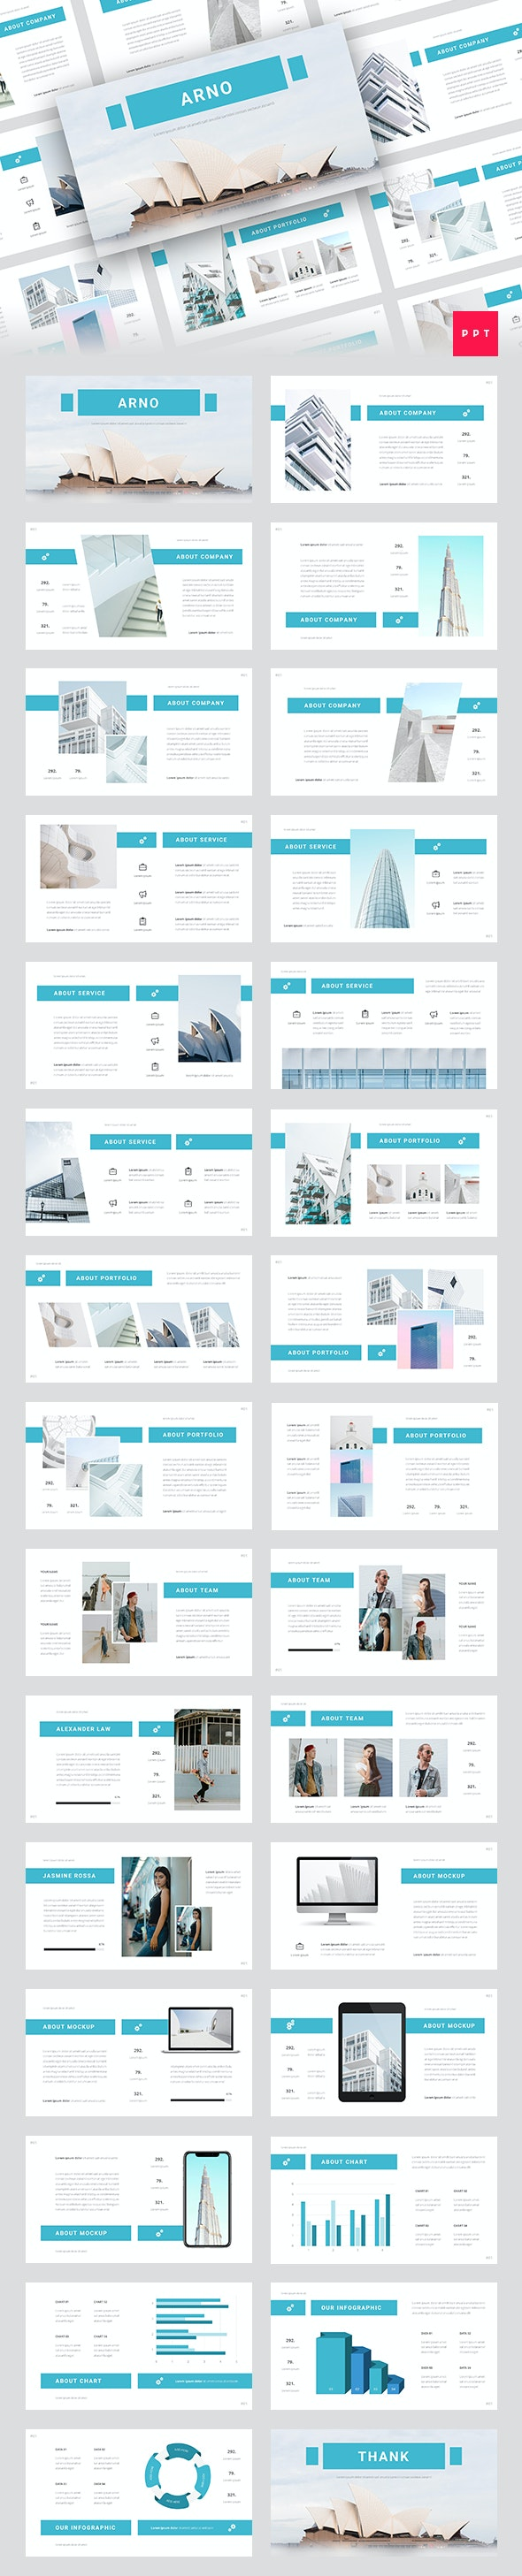 Arno - Architecture PowerPoint Template - Business PowerPoint Templates